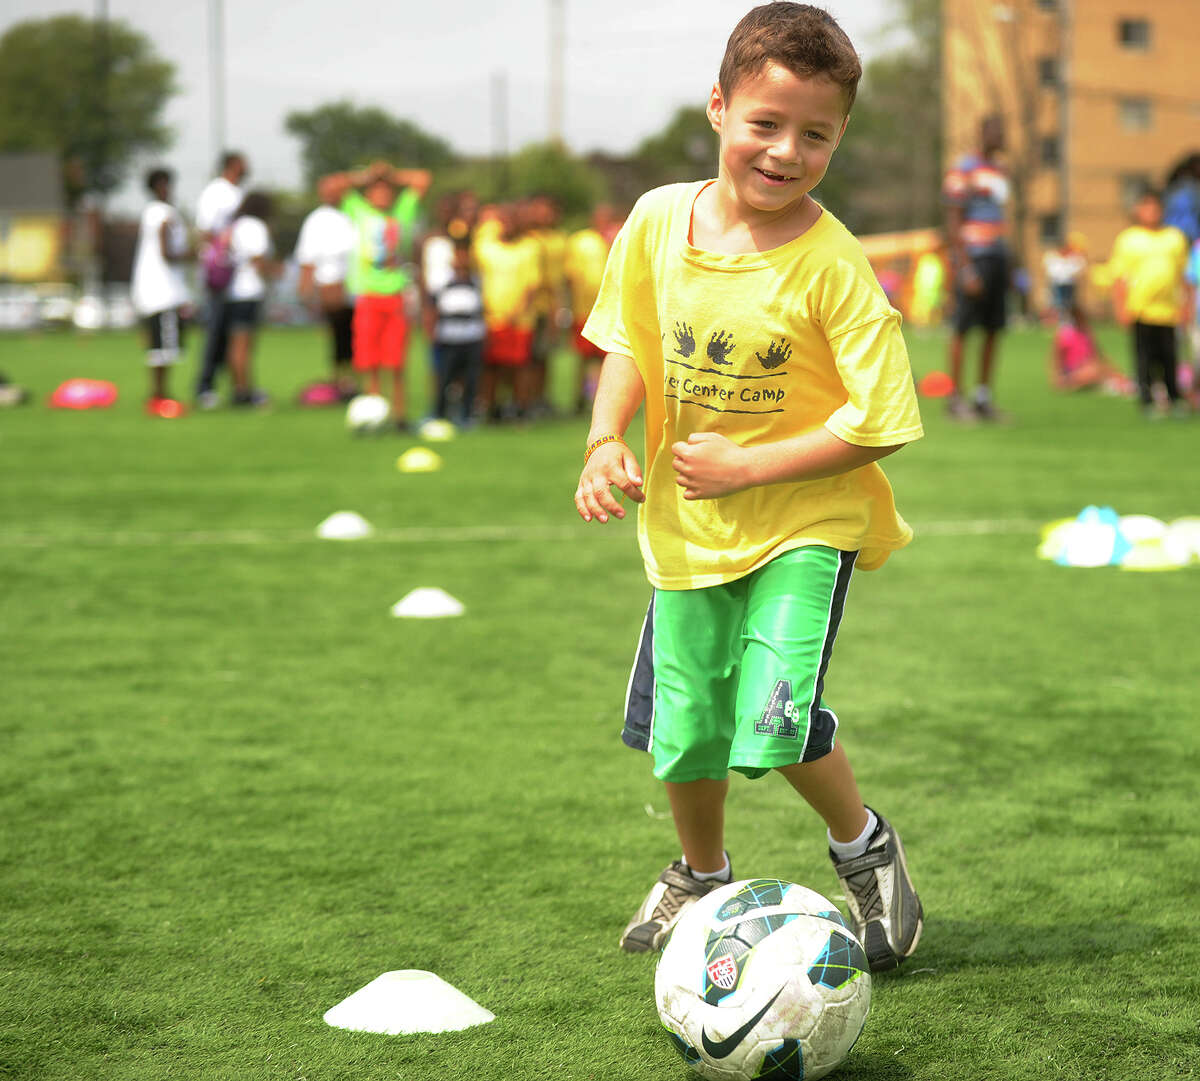 Carver Center Camp camper Eddie Vera, 8, of Norwalk, participates in a soccer drill during the Third Annual Chelsea Cohen Fitness Academy Jamboree at the University of Bridgeport on Thursday, August 8, 2013.